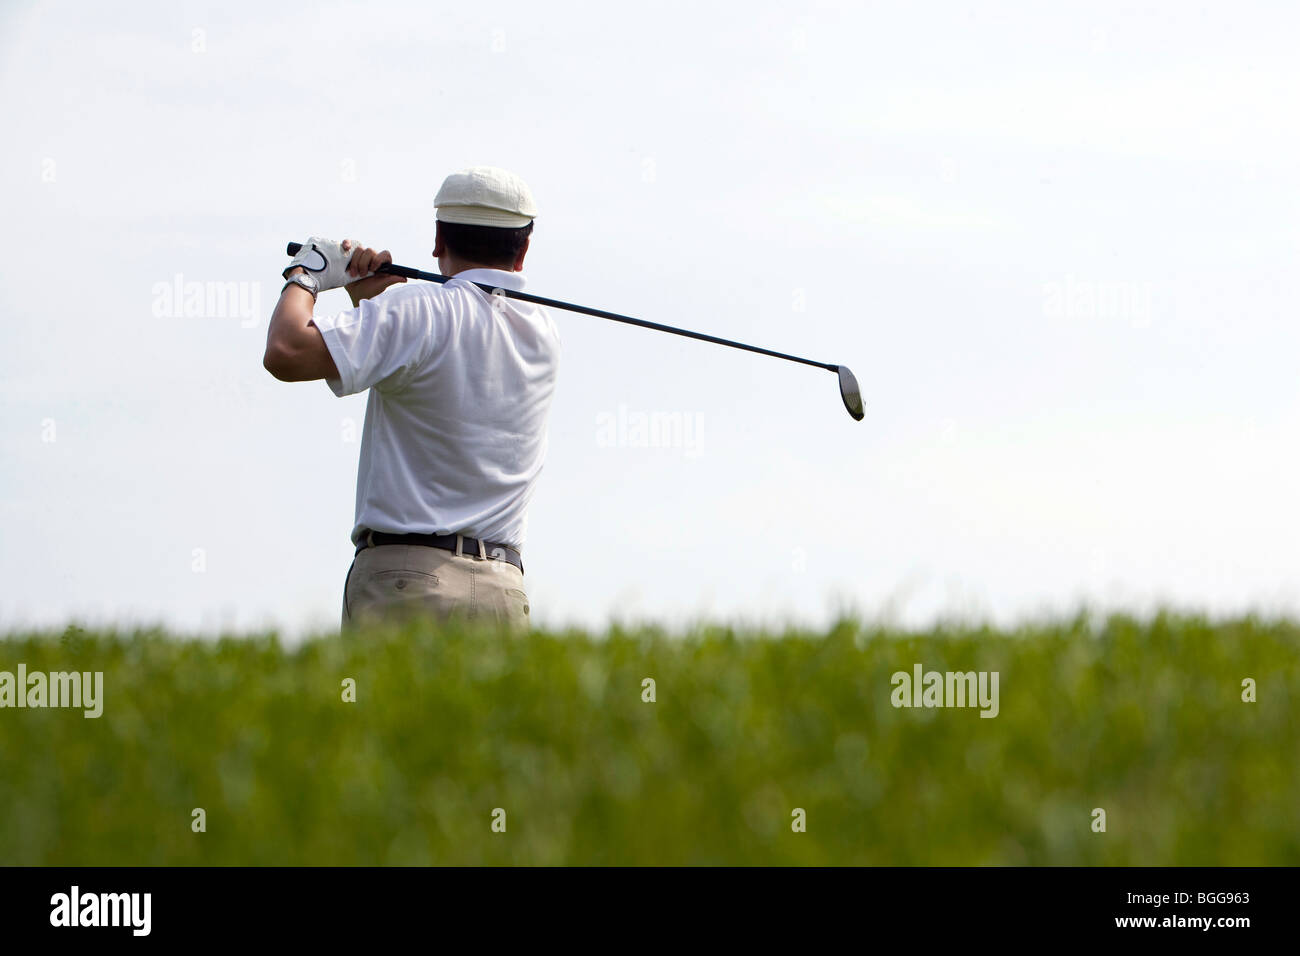 Rear View of Golfer's Swing - Stock Image